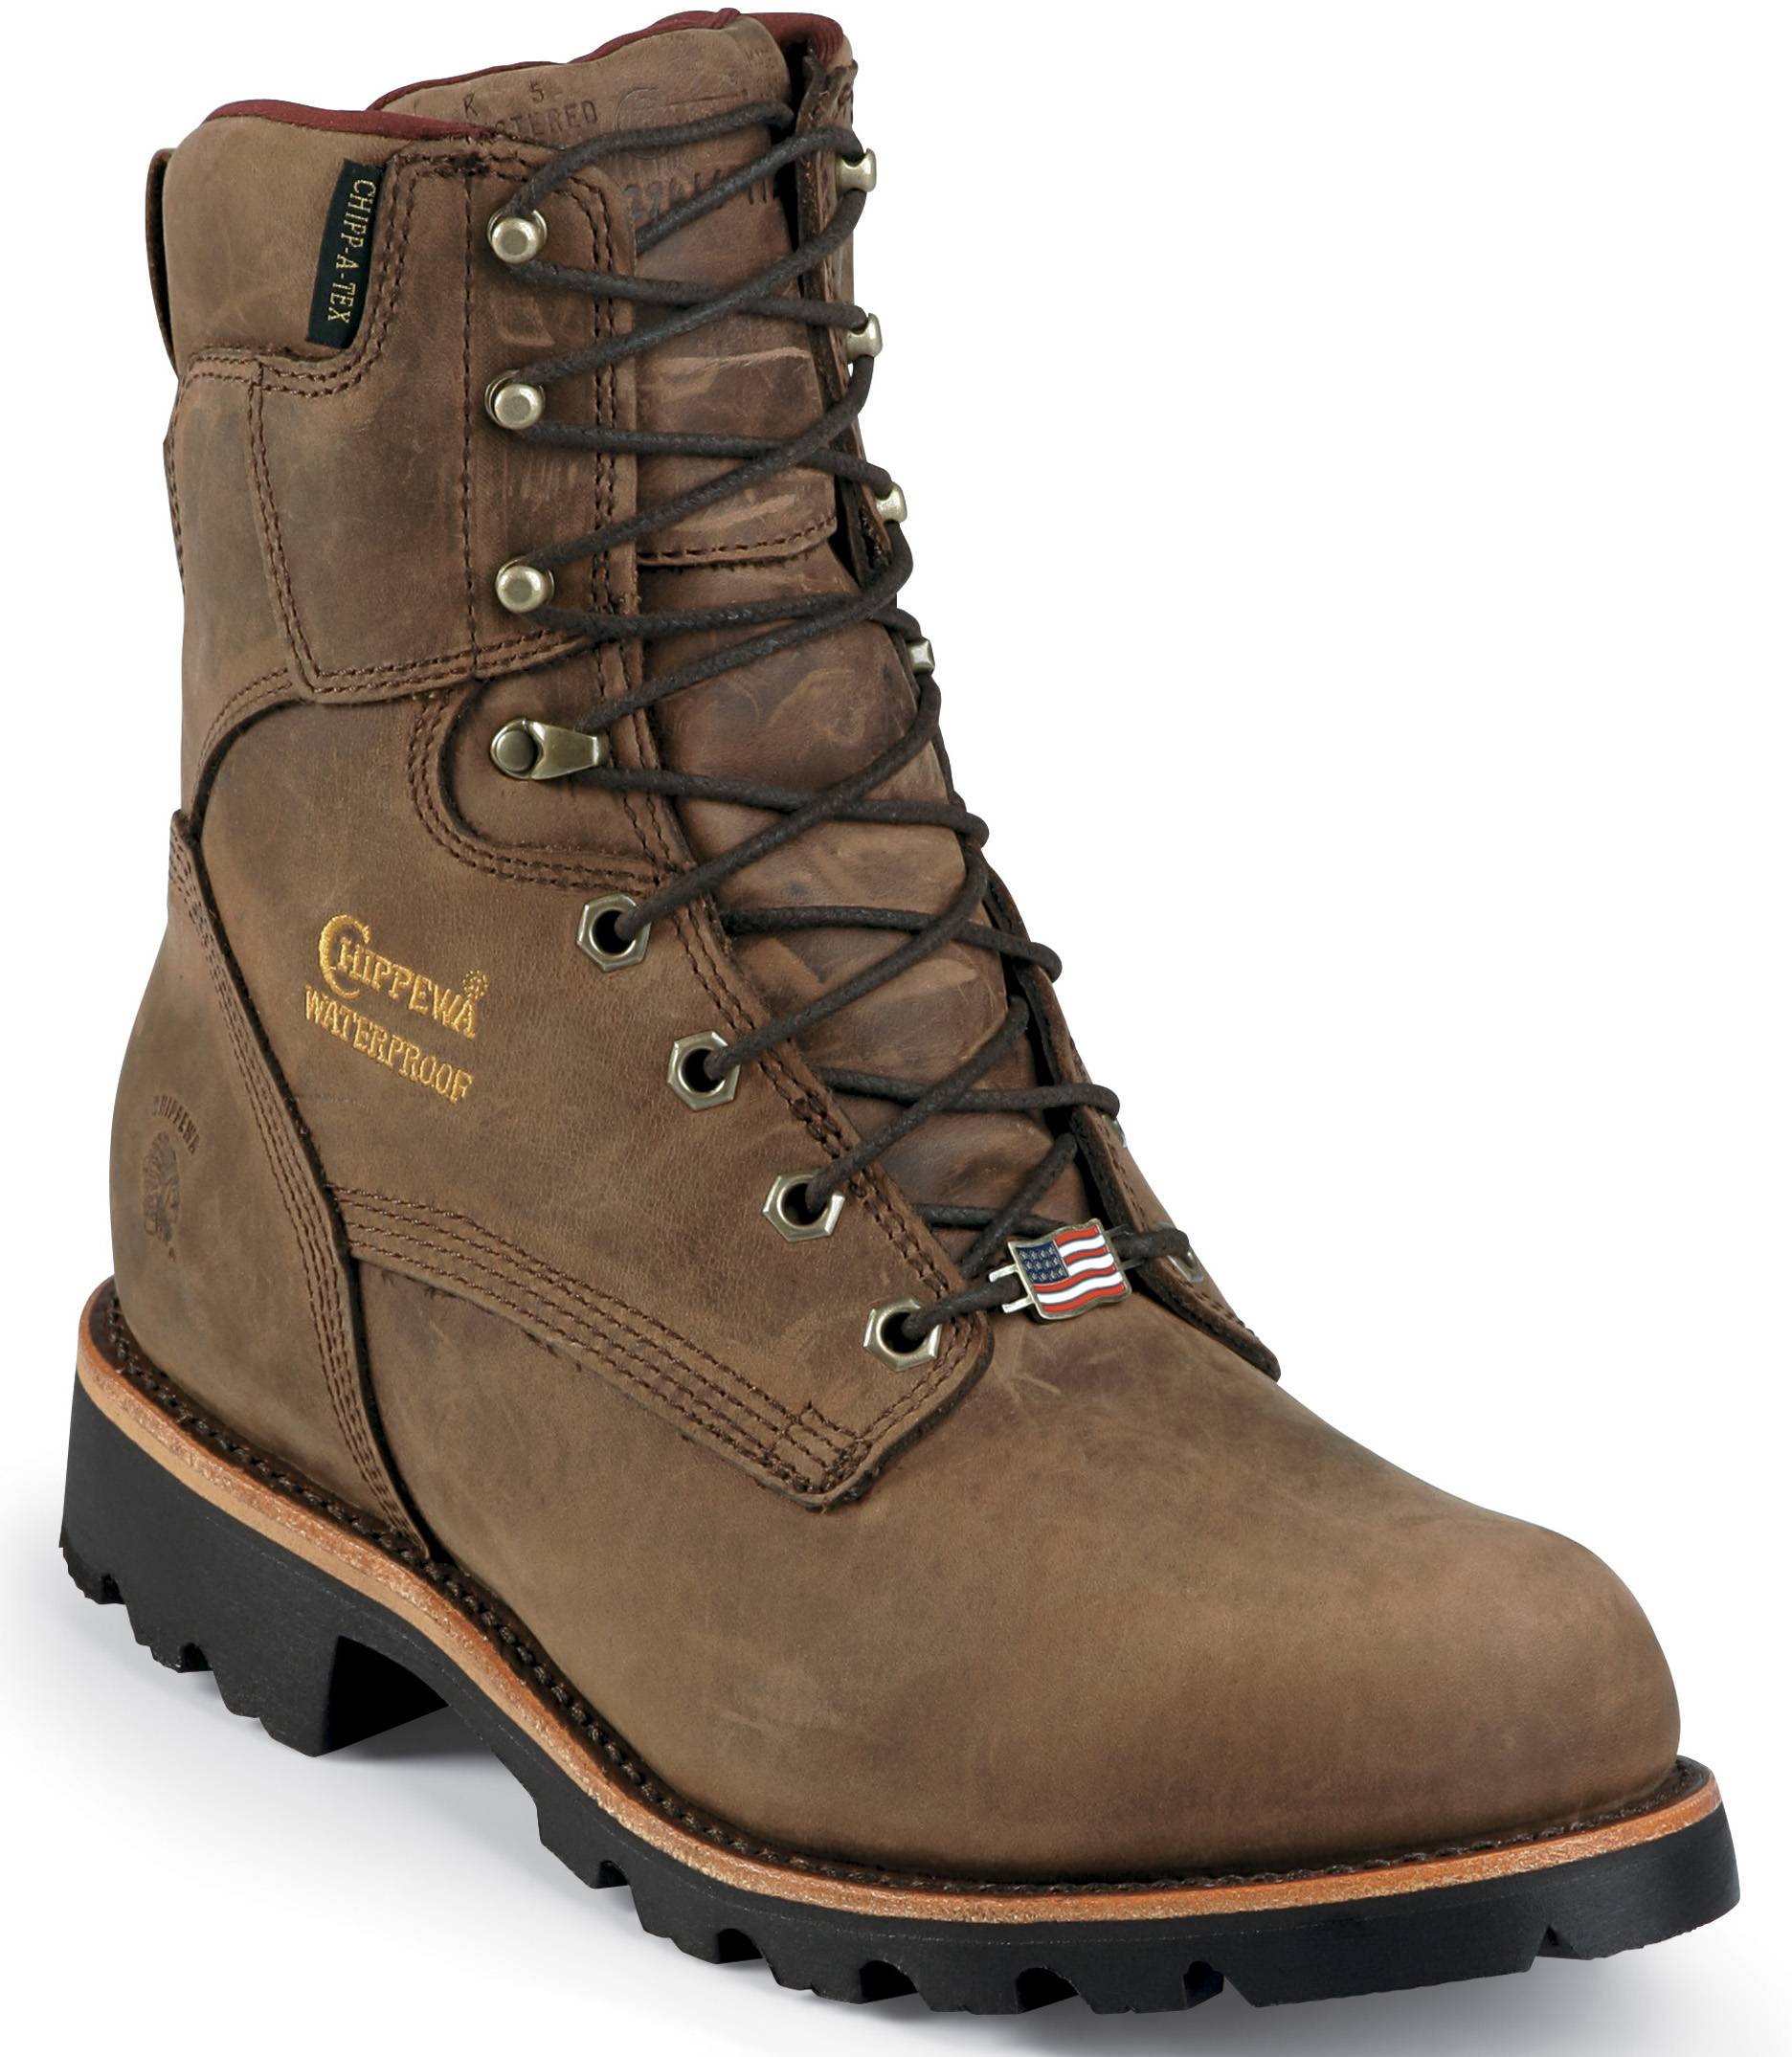 Chippewa Men's Waterproof Insulated Utility Work Boots Made In USA 29416 (EEE) at Sears.com